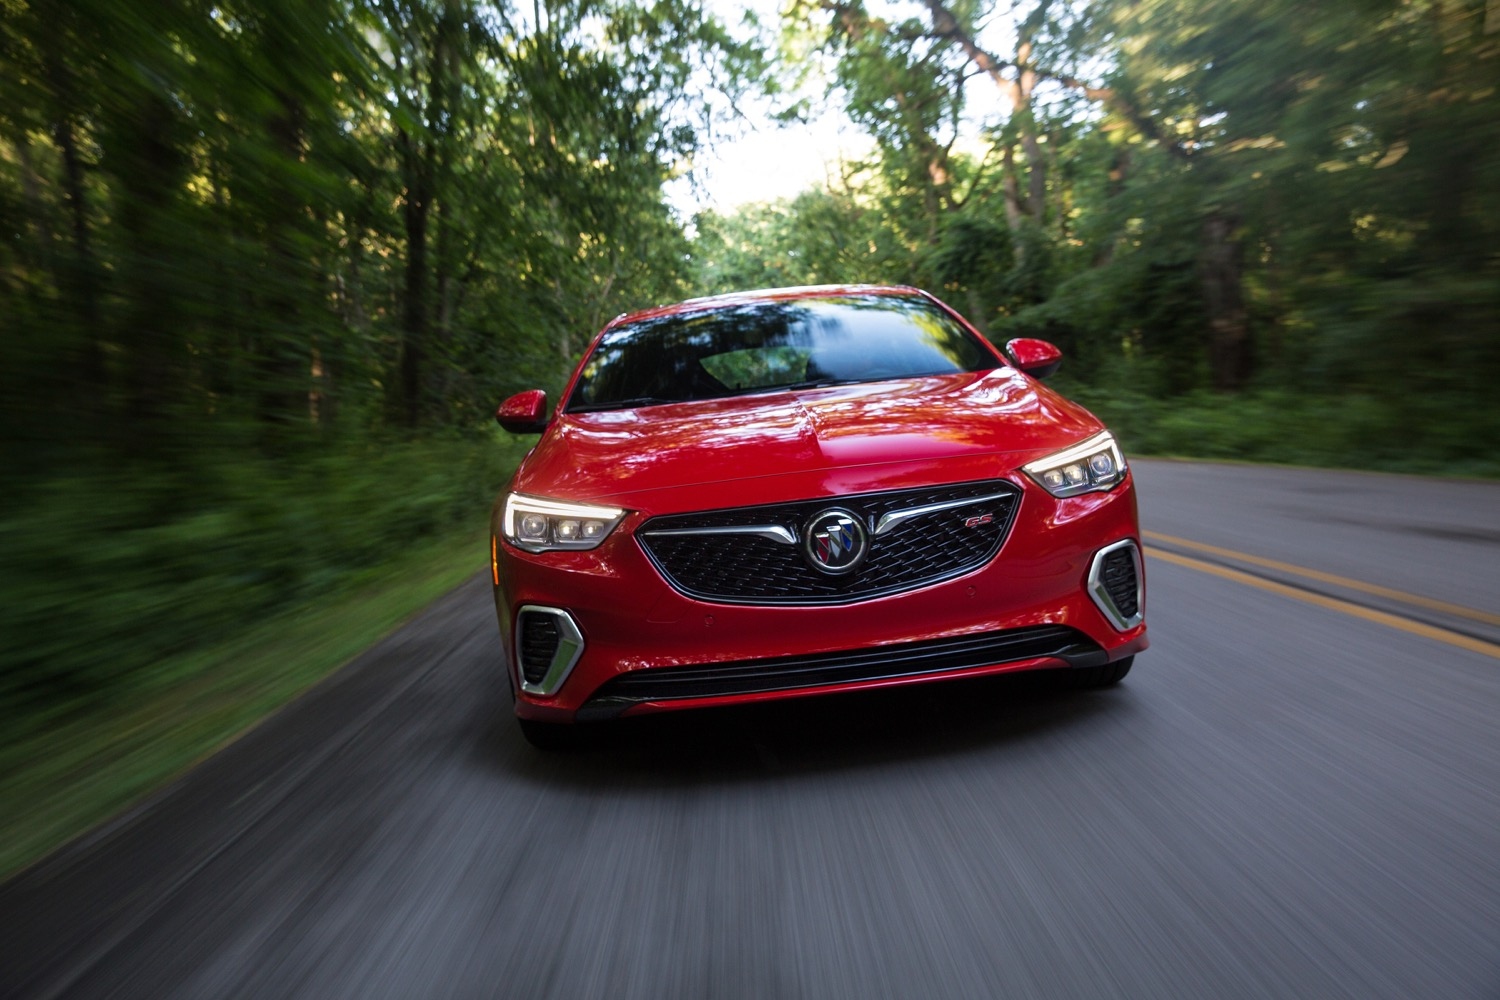 2018 Buick Regal Gs Revealed With V6 Engine | Gm Authority New 2022 Buick Regal Gs Colors, Changes, Horsepower